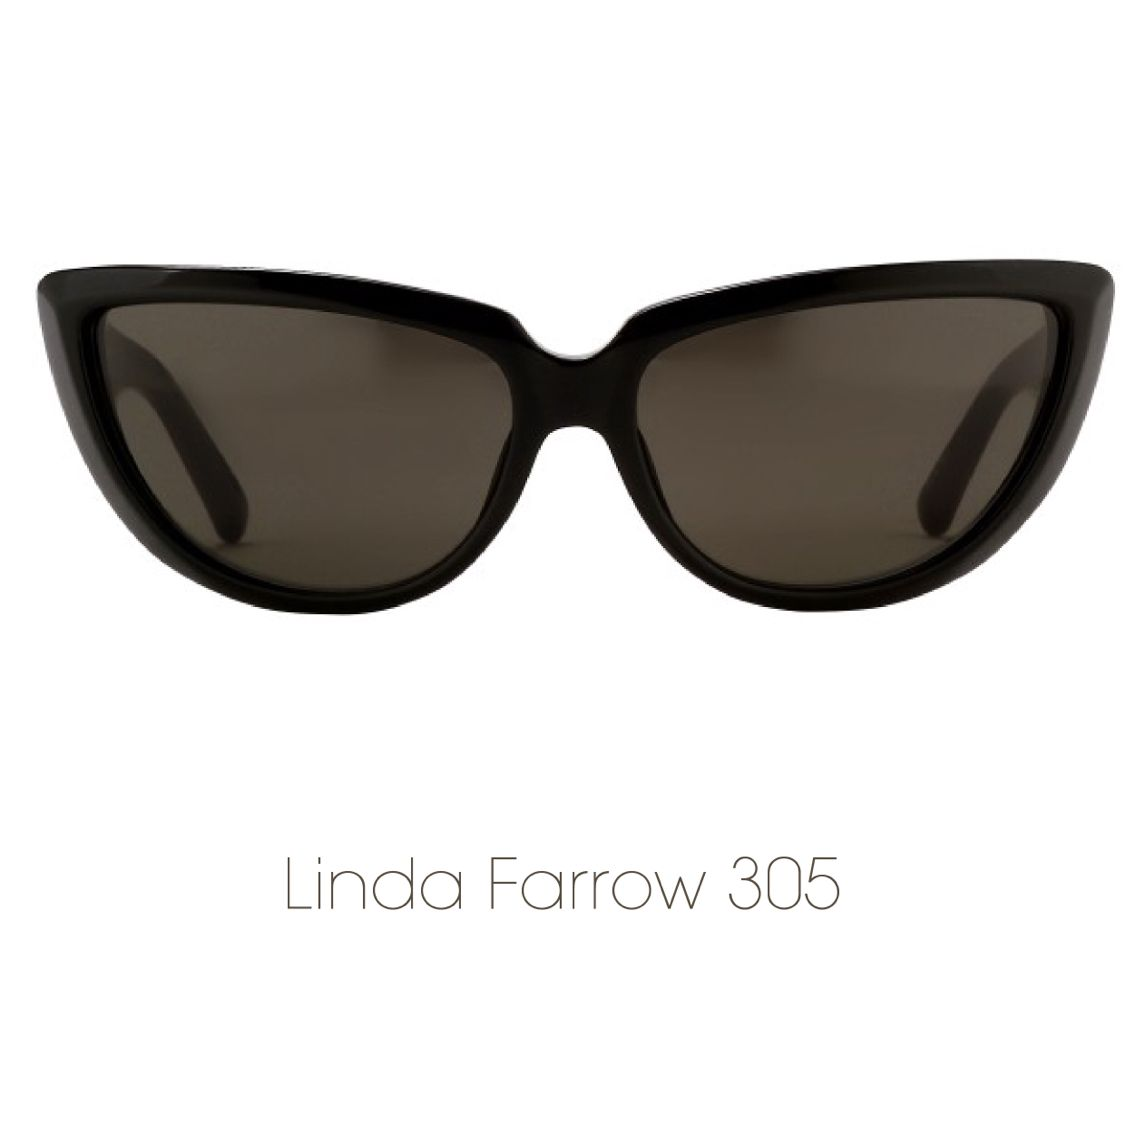 28d64deda5a6 Switching it up this  Caturday with these pointy cat eye sunnies from Linda  Farrow.